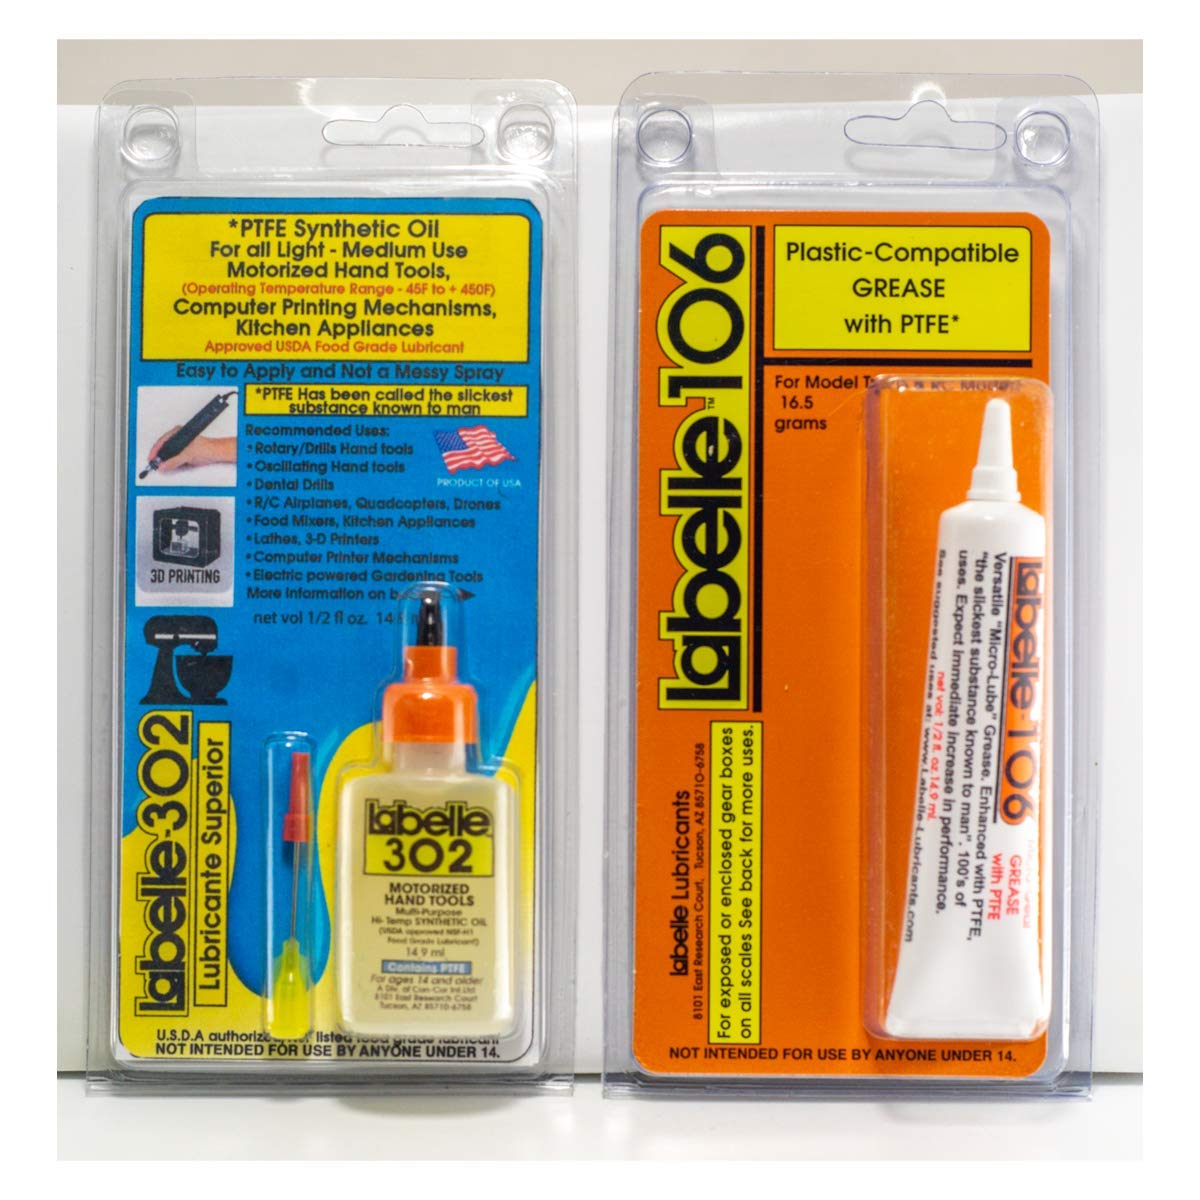 Kitchen Grade Lubricants, USDA Food Grade Approved,2-pak of Oil & Grease , home and commercial kitchen appliances-& All-around household use. Hi Heat Range, compatible with all plastic materials.